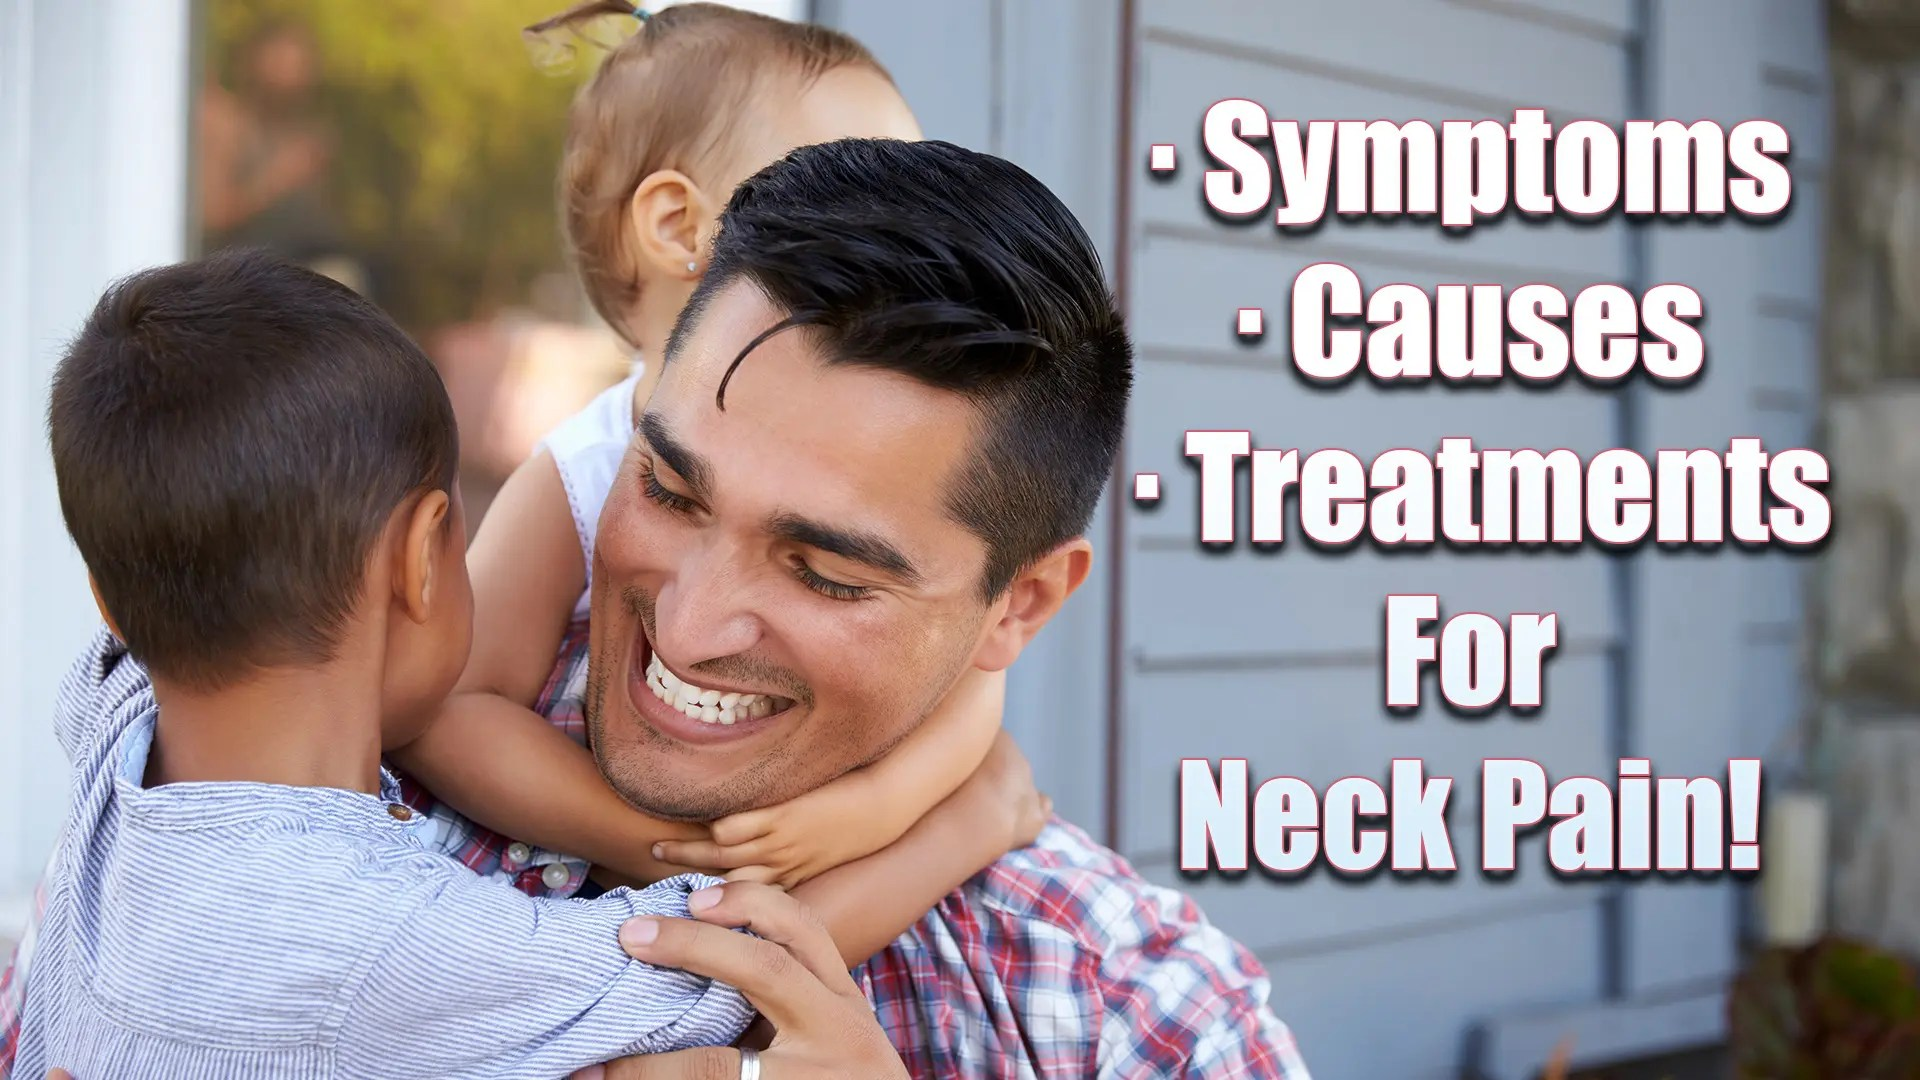 Symptoms, Causes & Treatments For Neck Pain